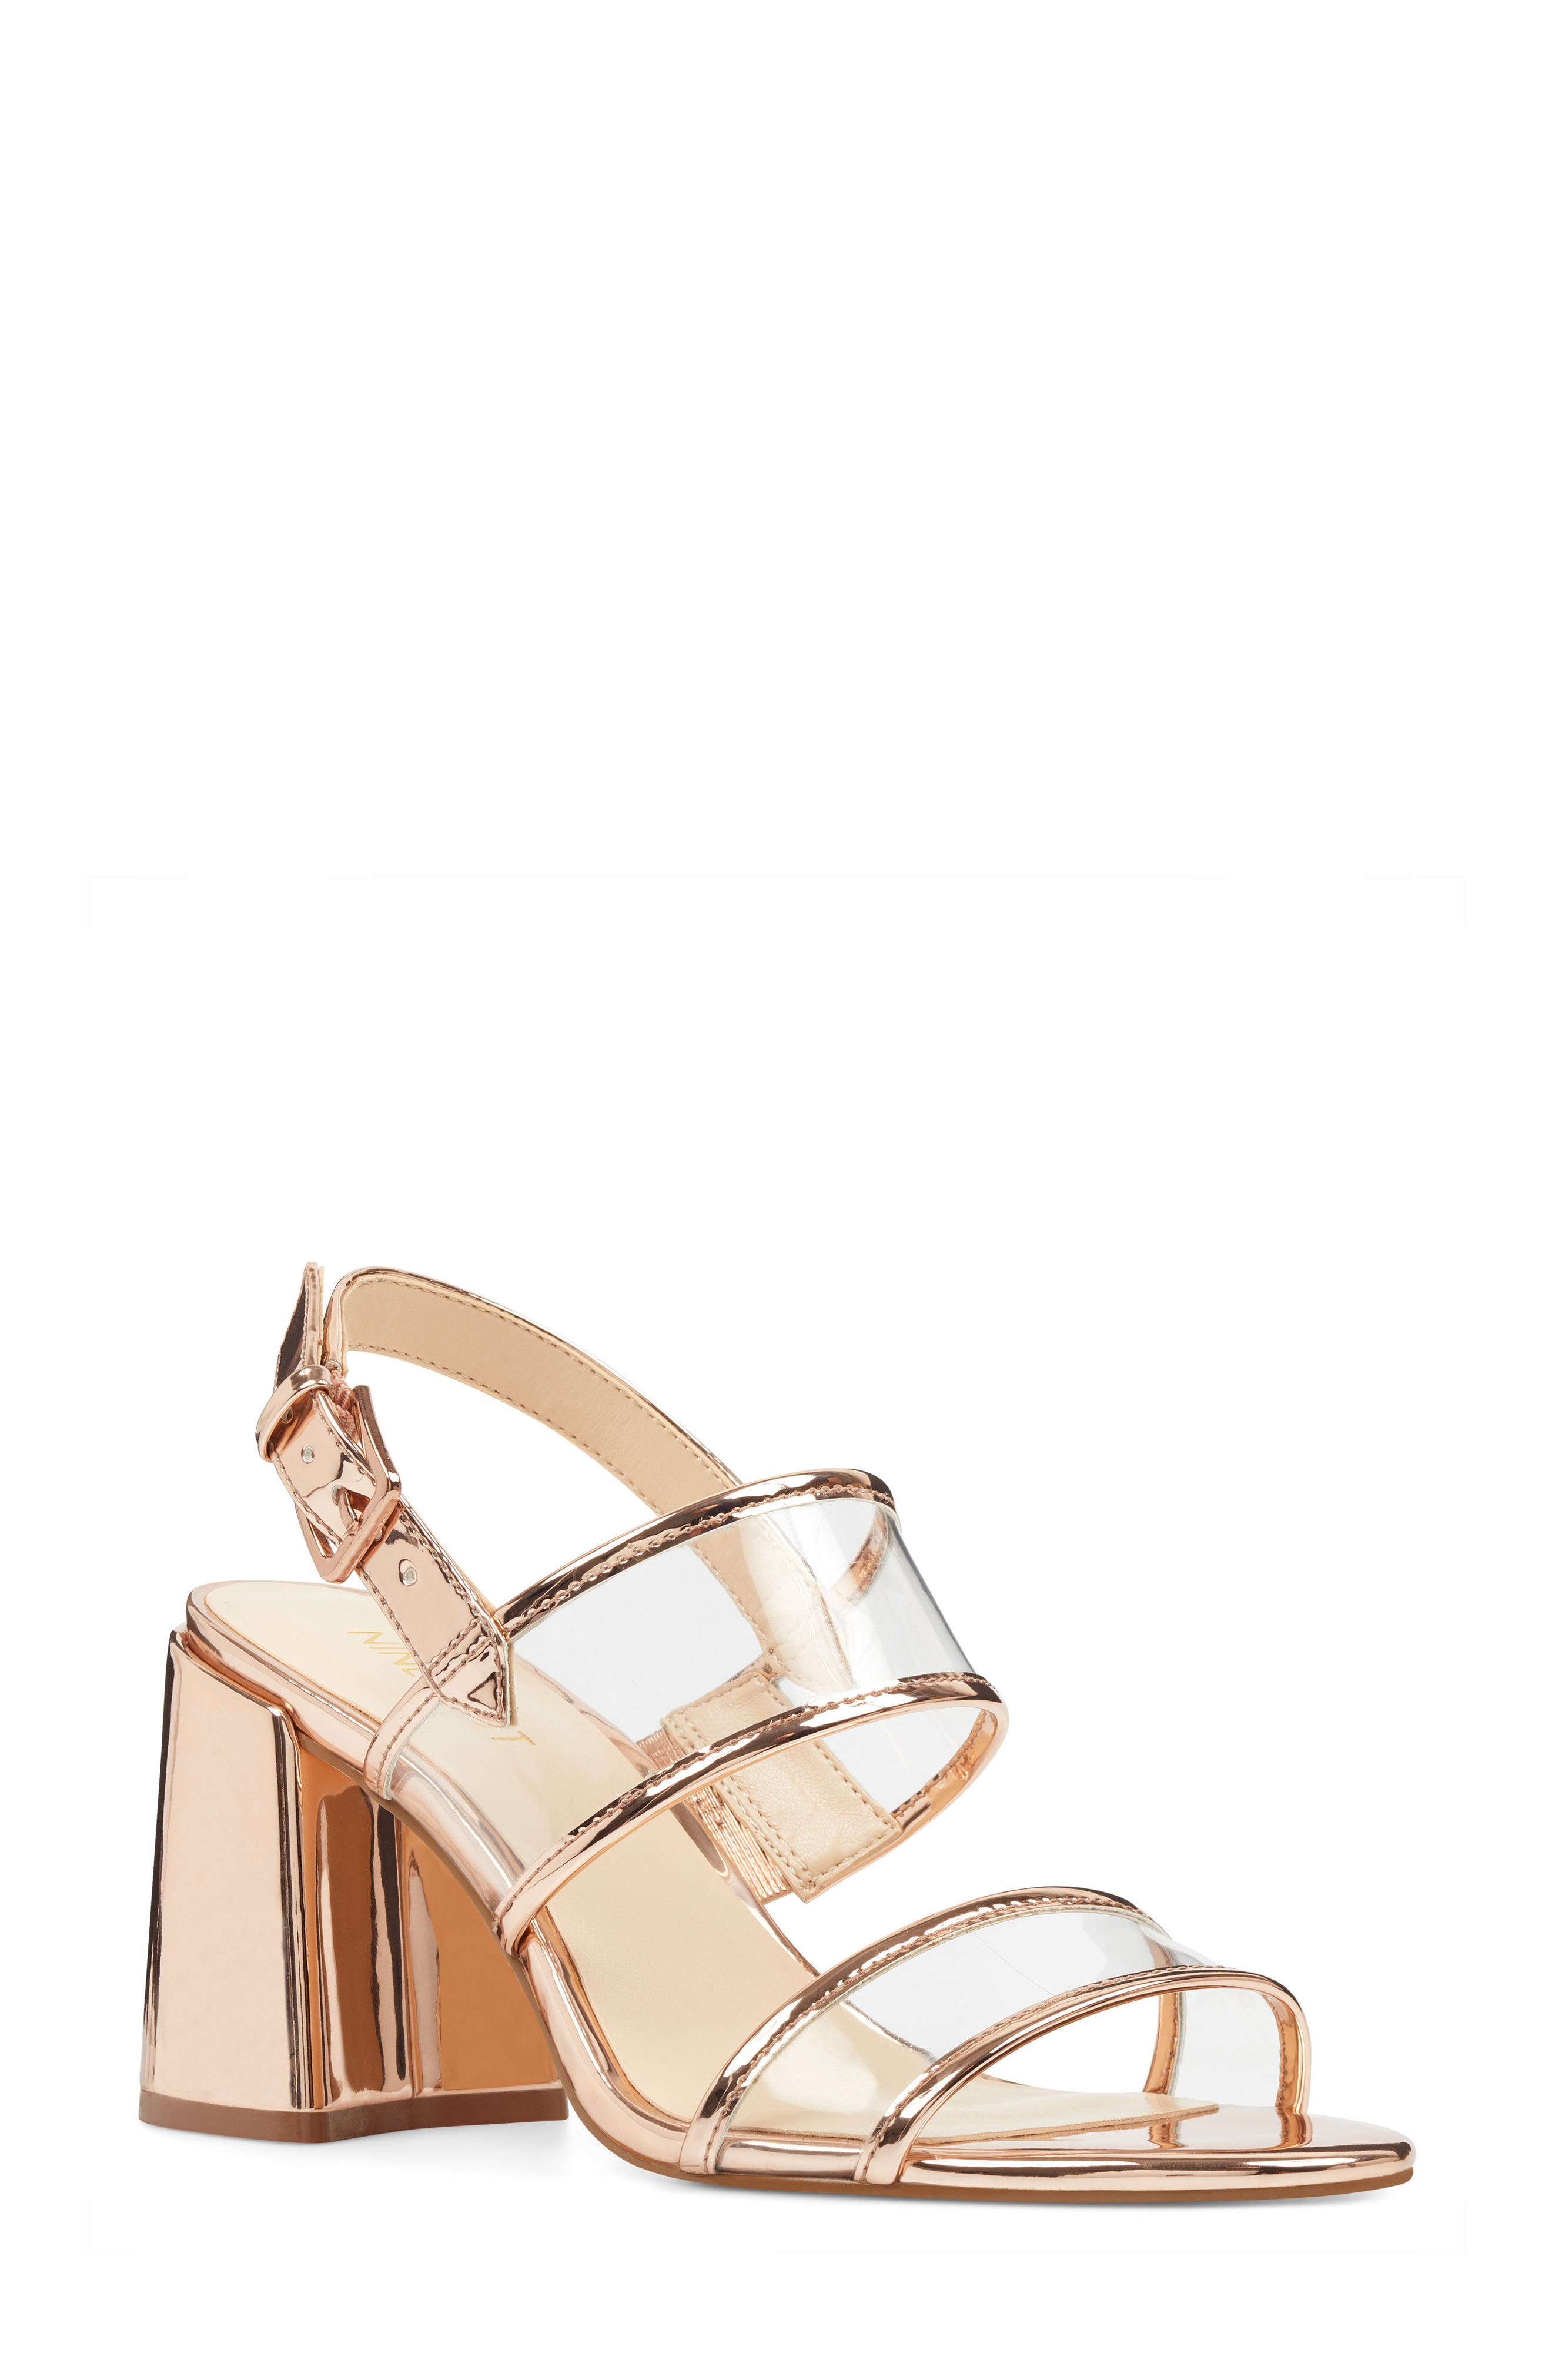 Gourdes Block Heel Sandal,                         Main,                         color, CLEAR PINK MULTI FAUX LEATHER